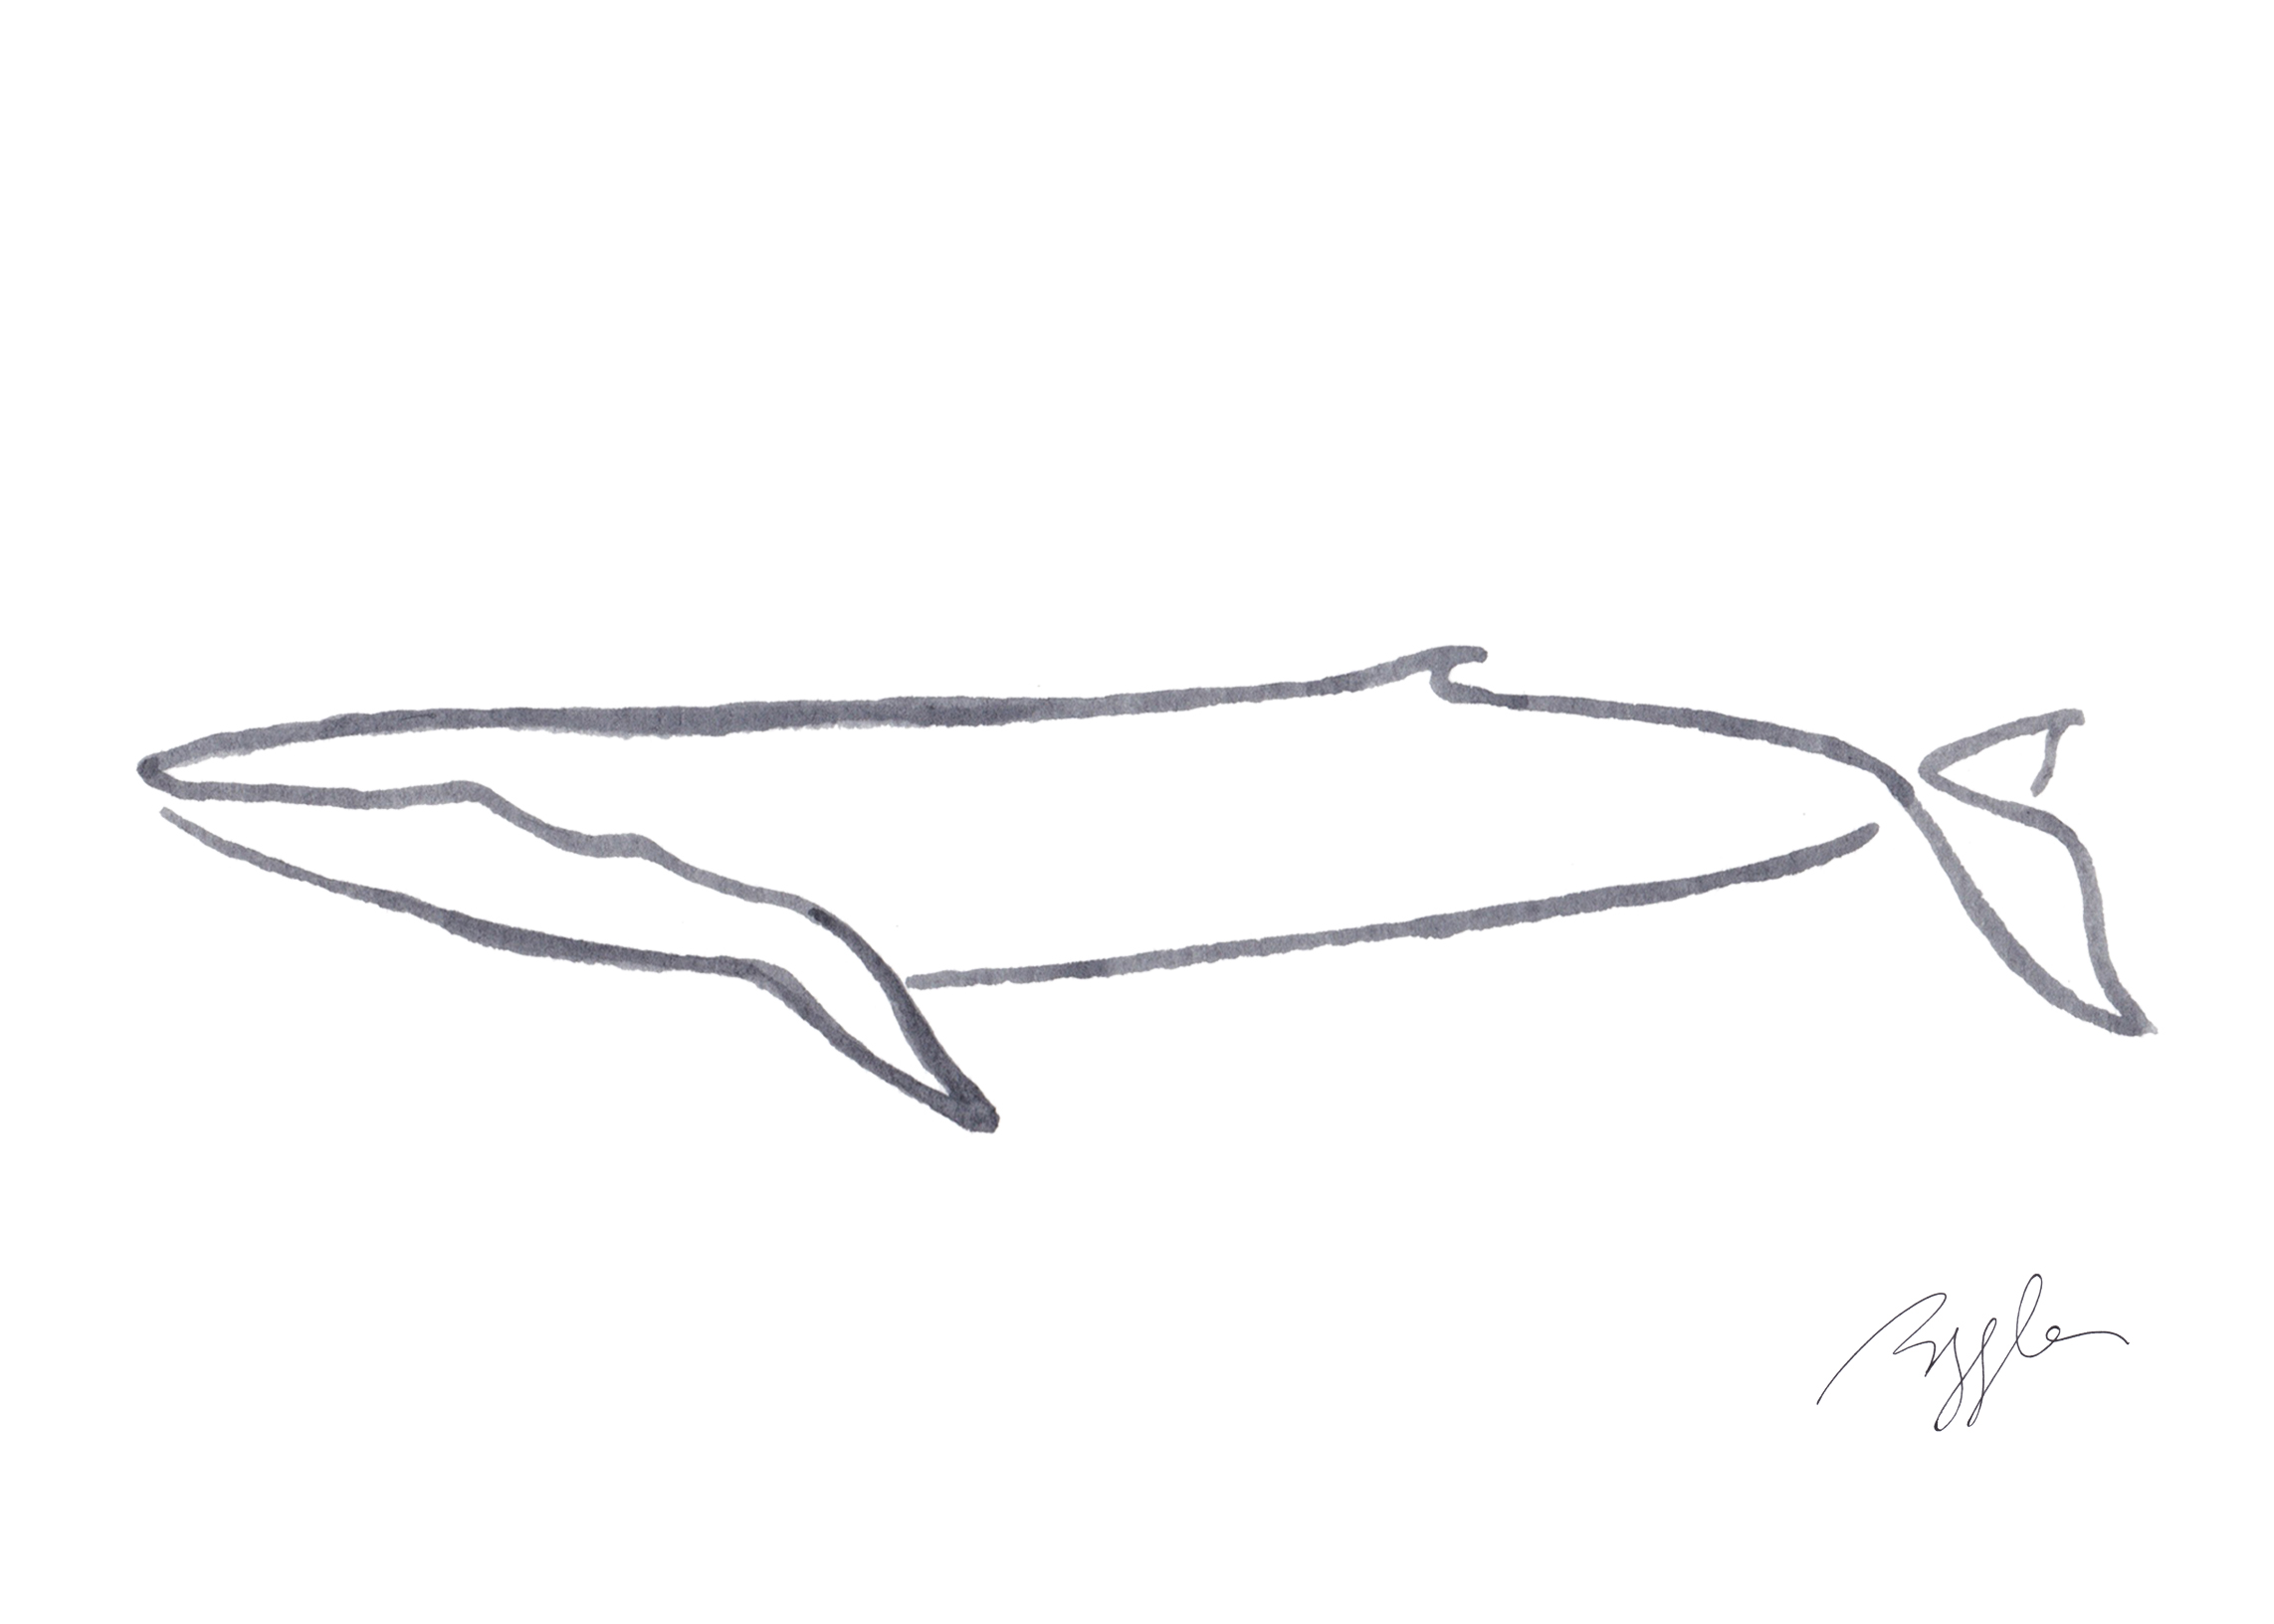 Brazzlebird - Bryde's Whale Line Watercolor Painting.jpg